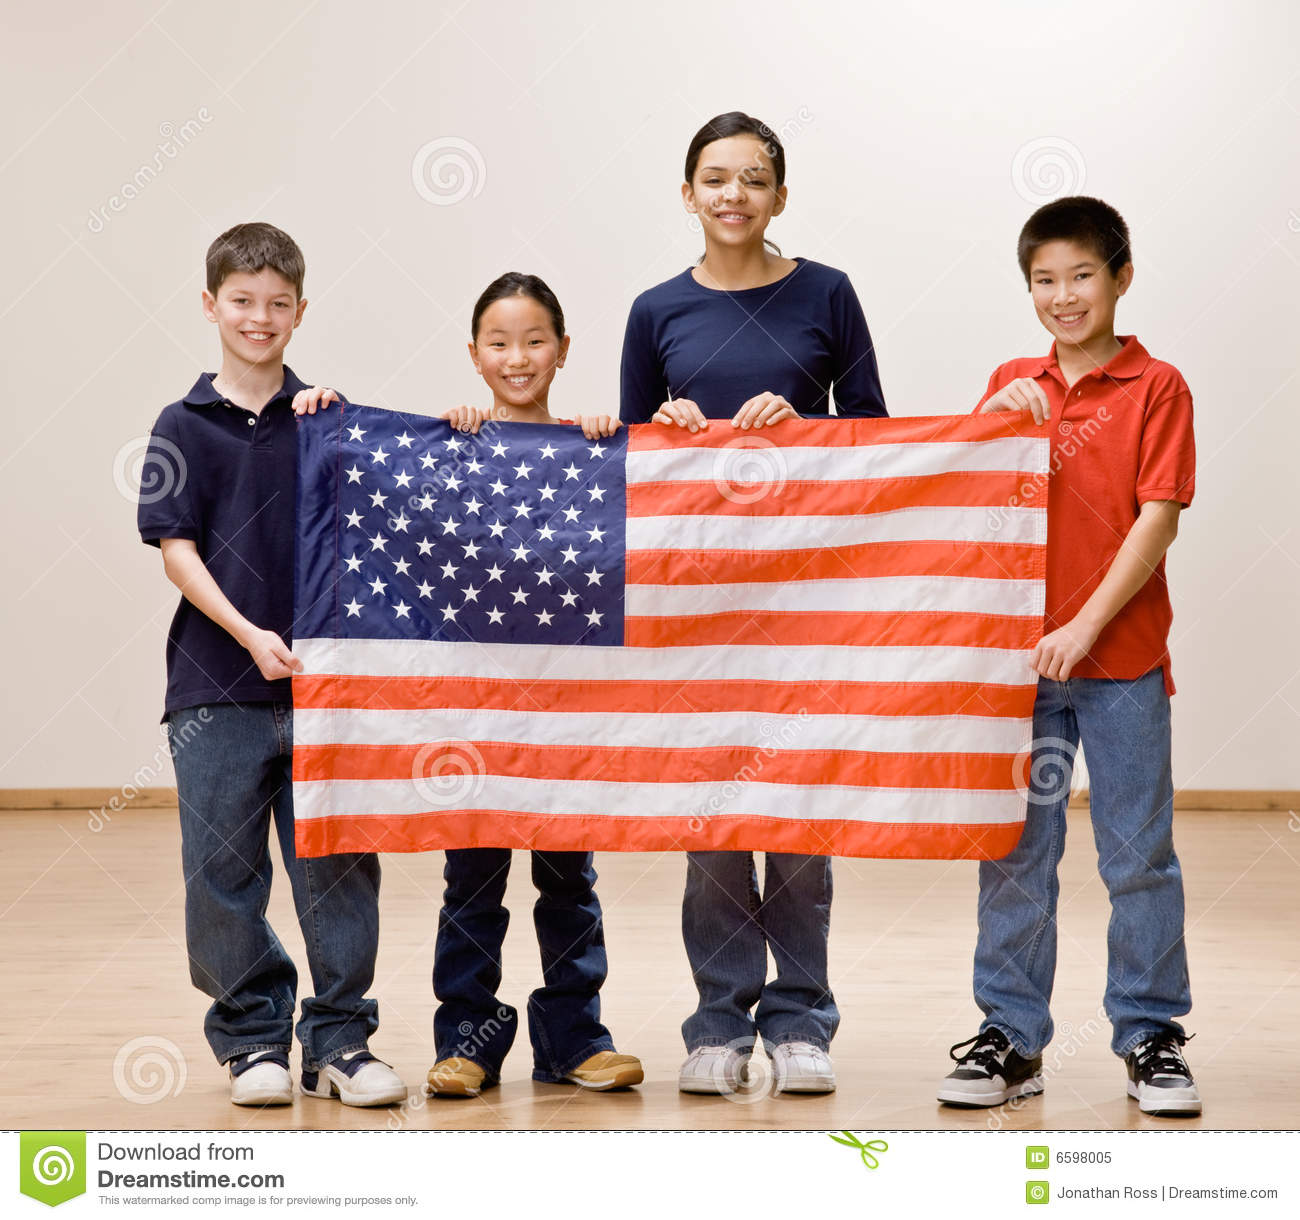 Children S Facts About The American Flag